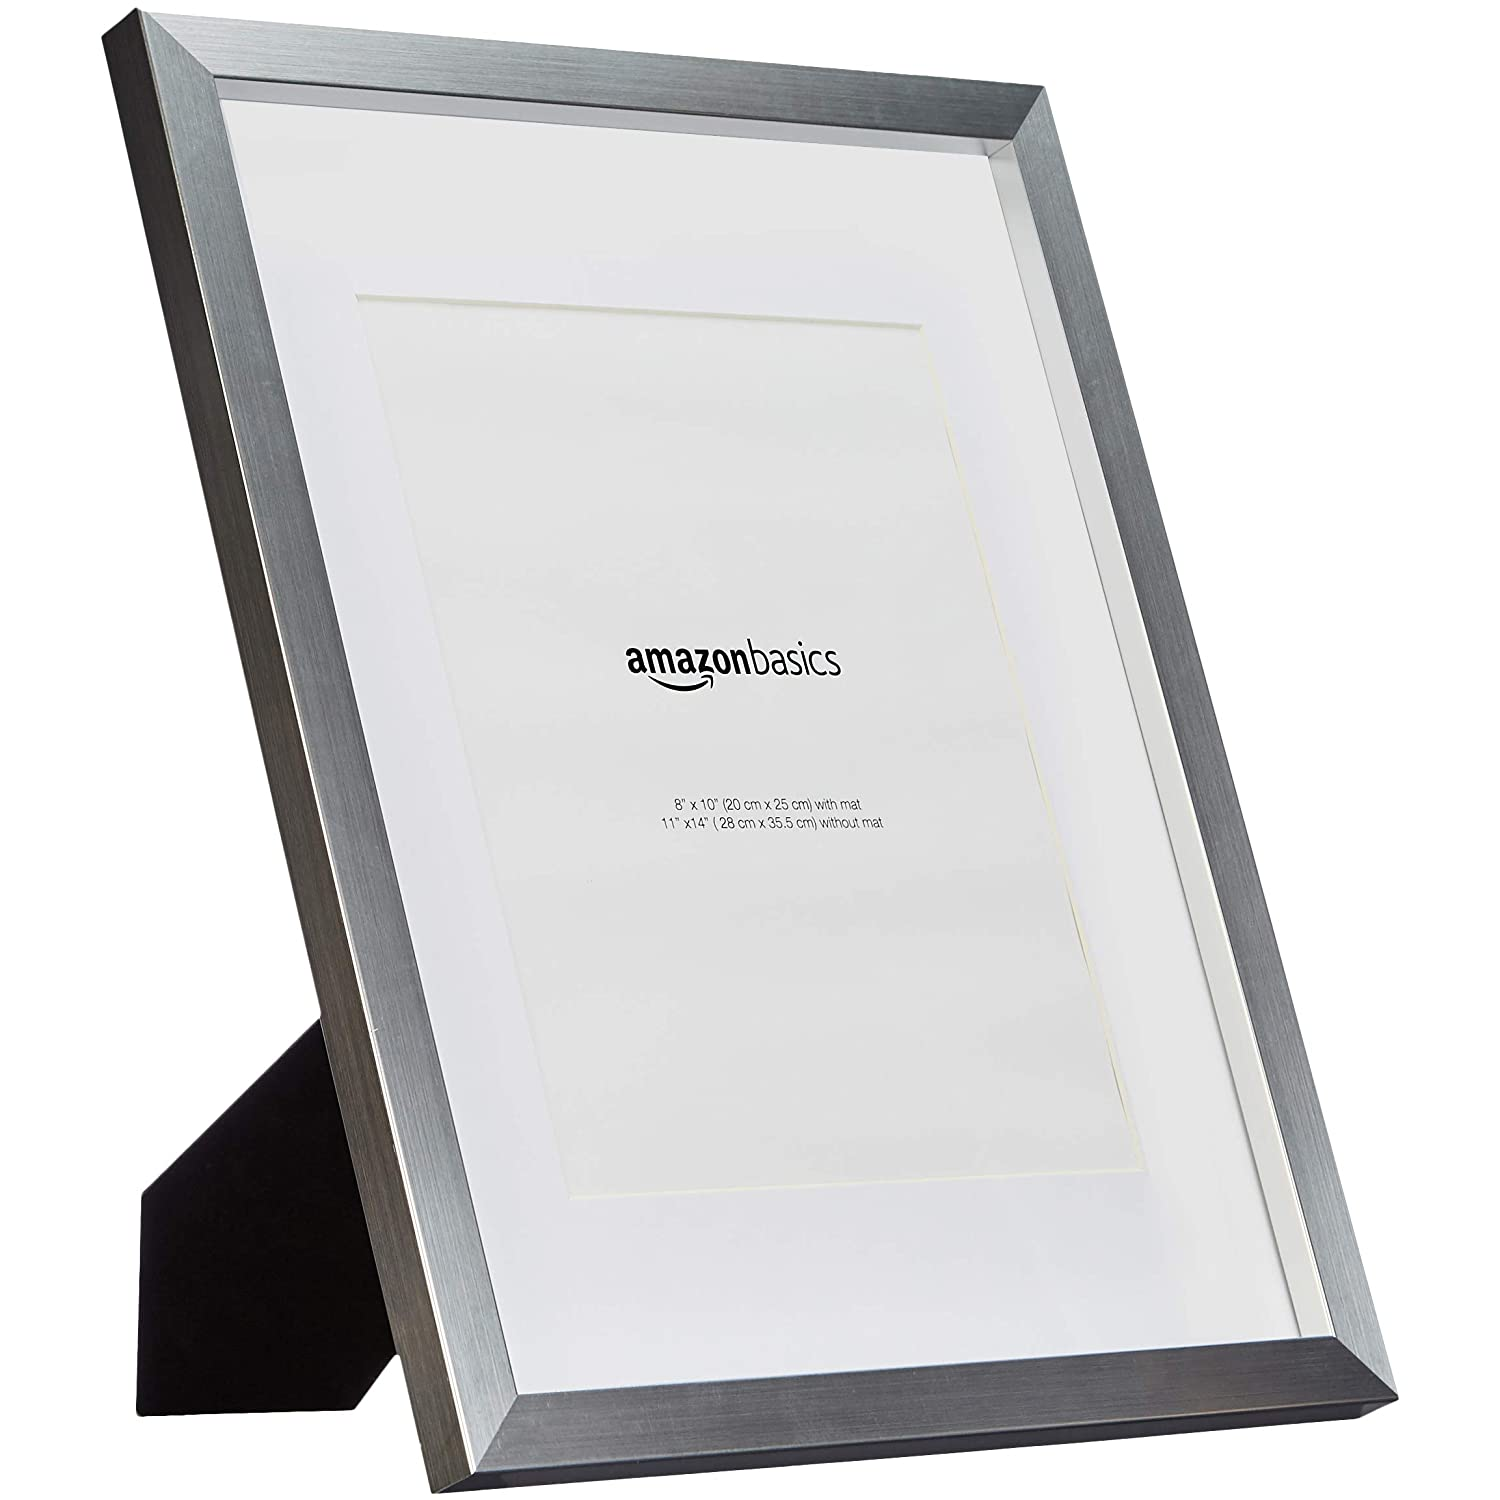 2-Pack 1010893-040-A60 Black Basics Photo Frame with Mat 11 x 14 matted to 8 x 10